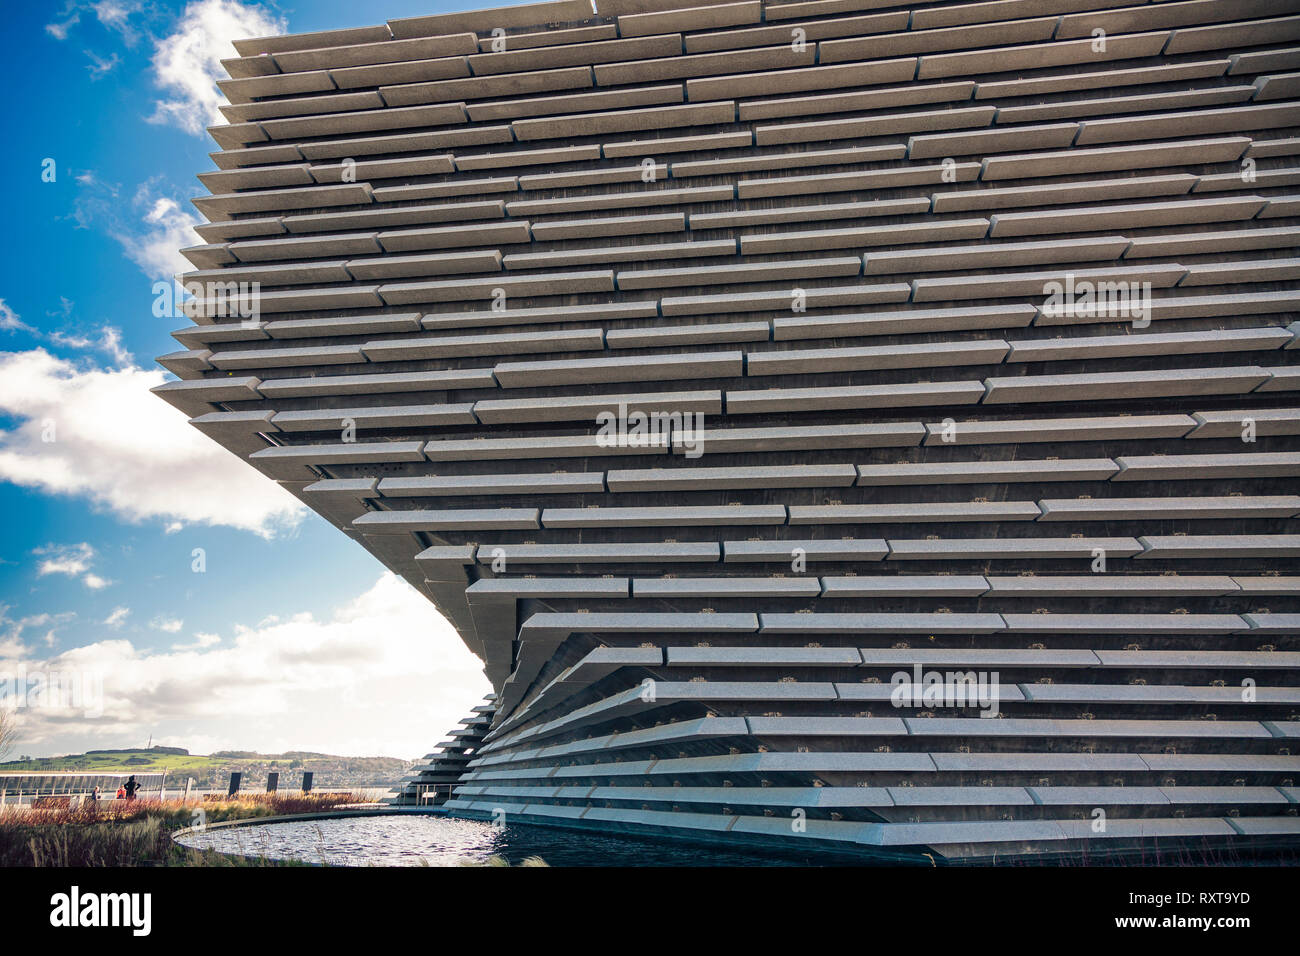 A sectional view of the stunning V&A Museum in Dundee designed by world famous architect Kengo Kuma - Stock Image